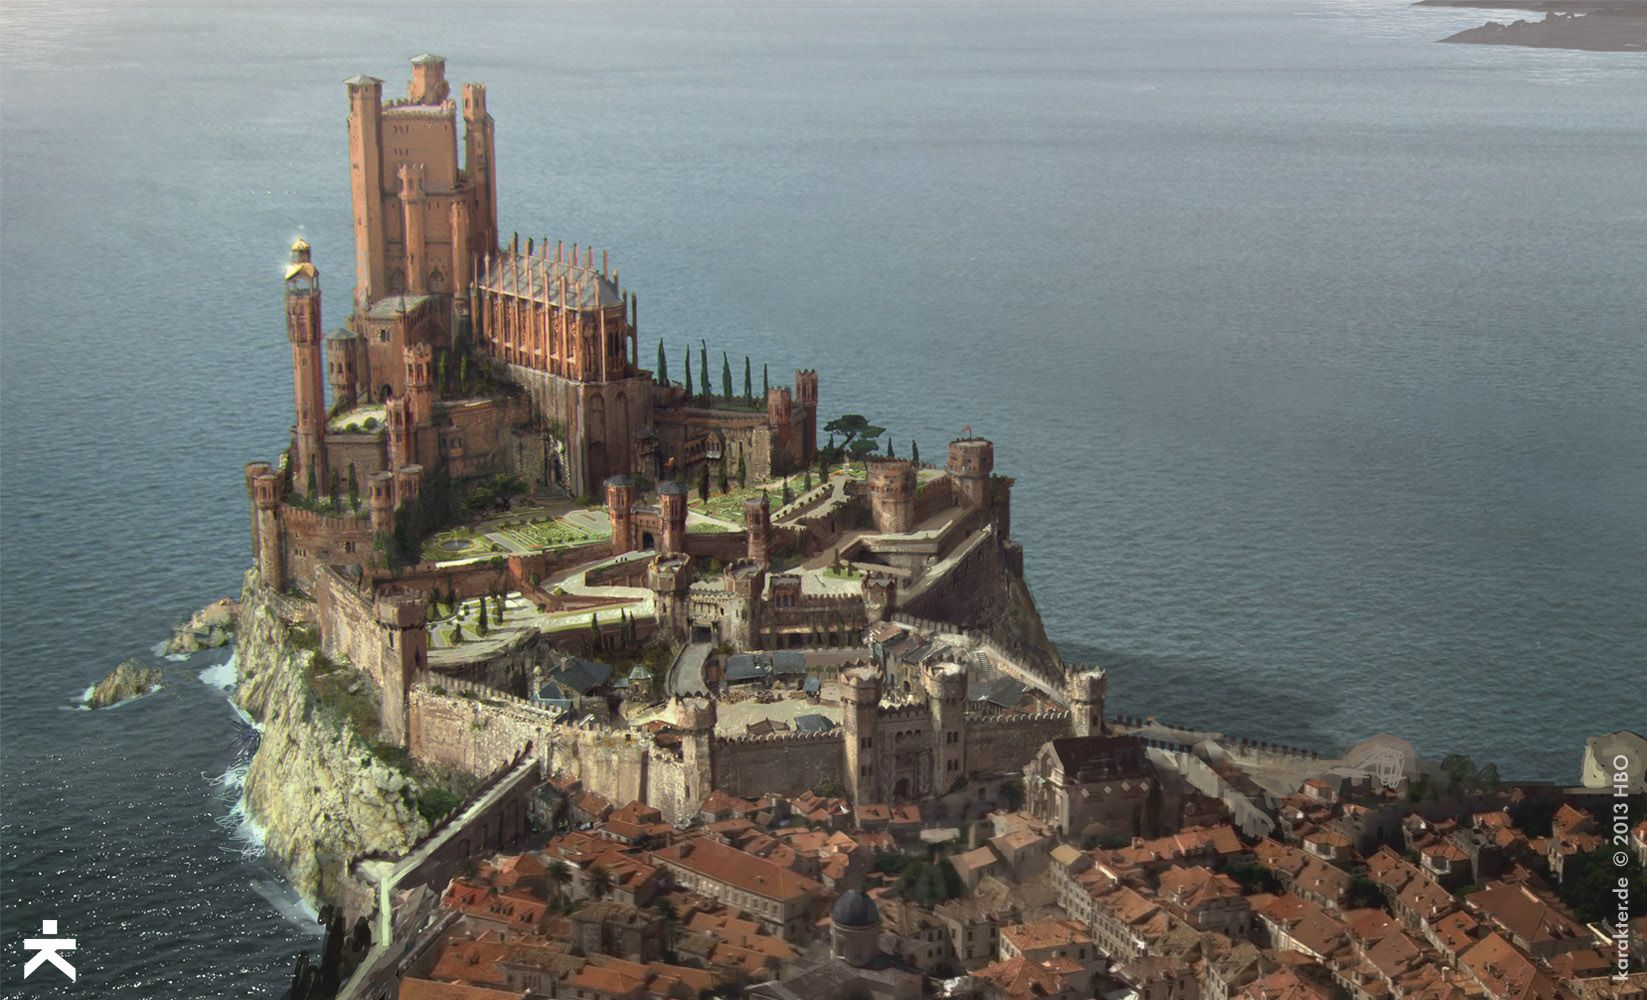 game of thrones locations in real life